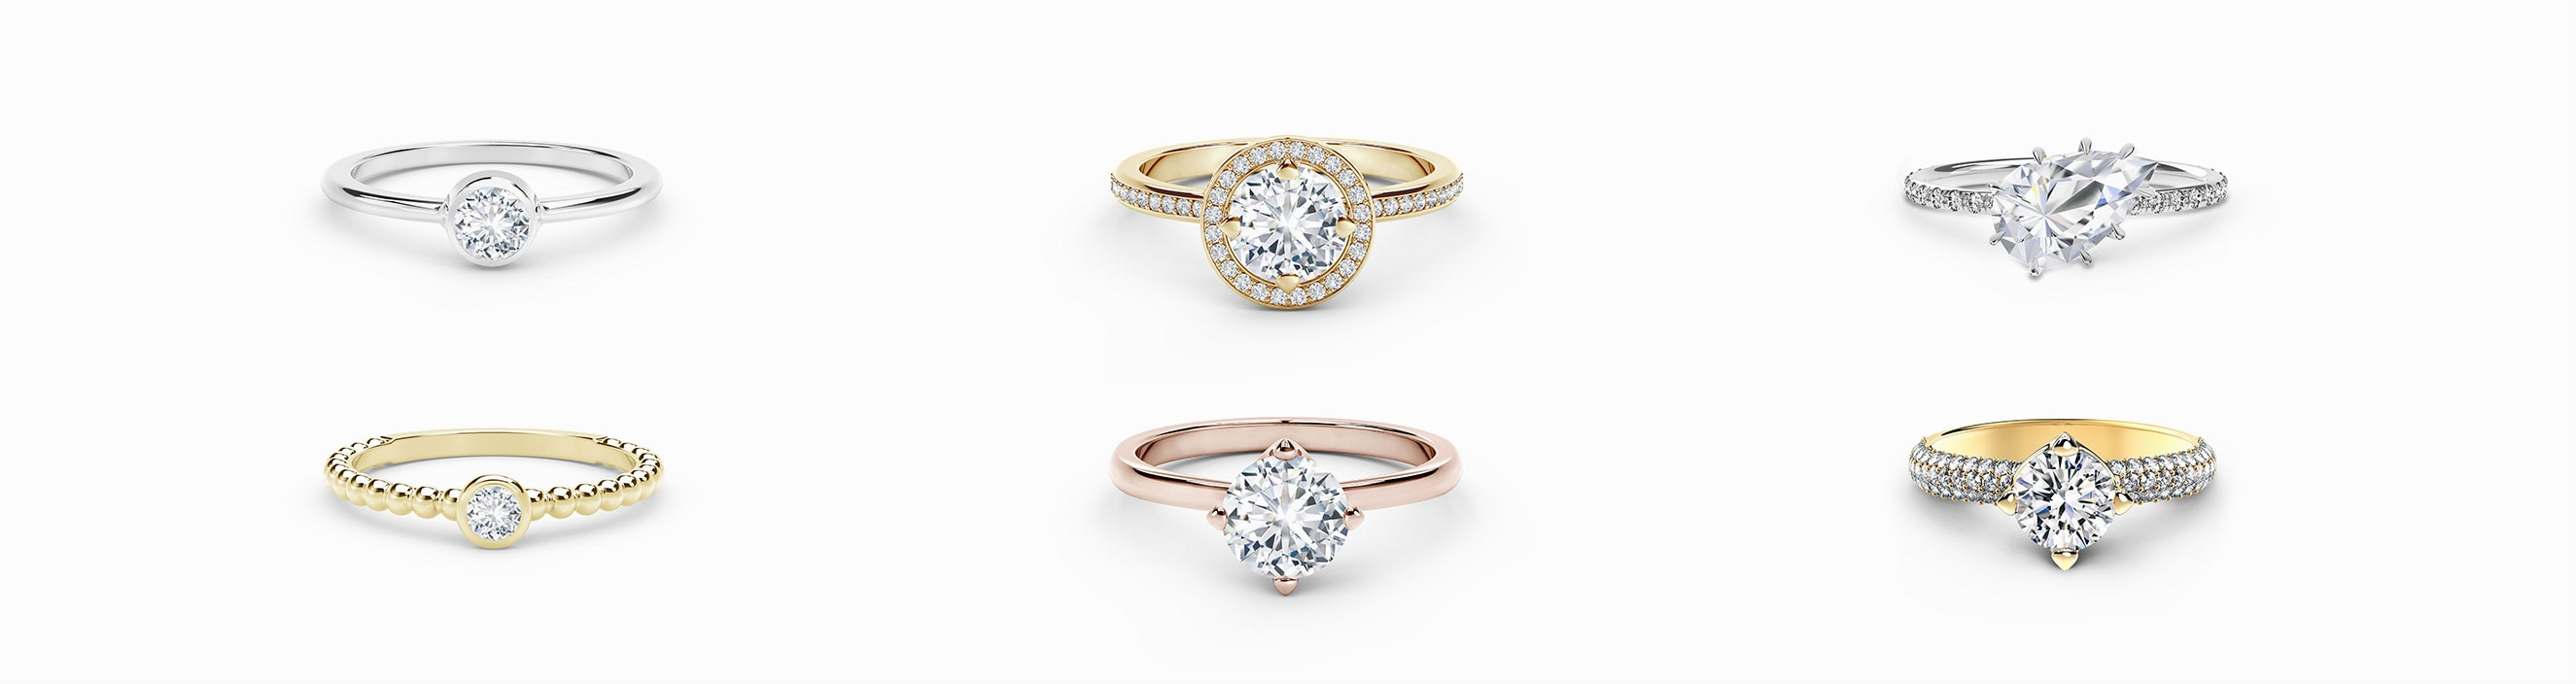 Engagement Ring Styles Diamond Solitaire Rings Forevermark